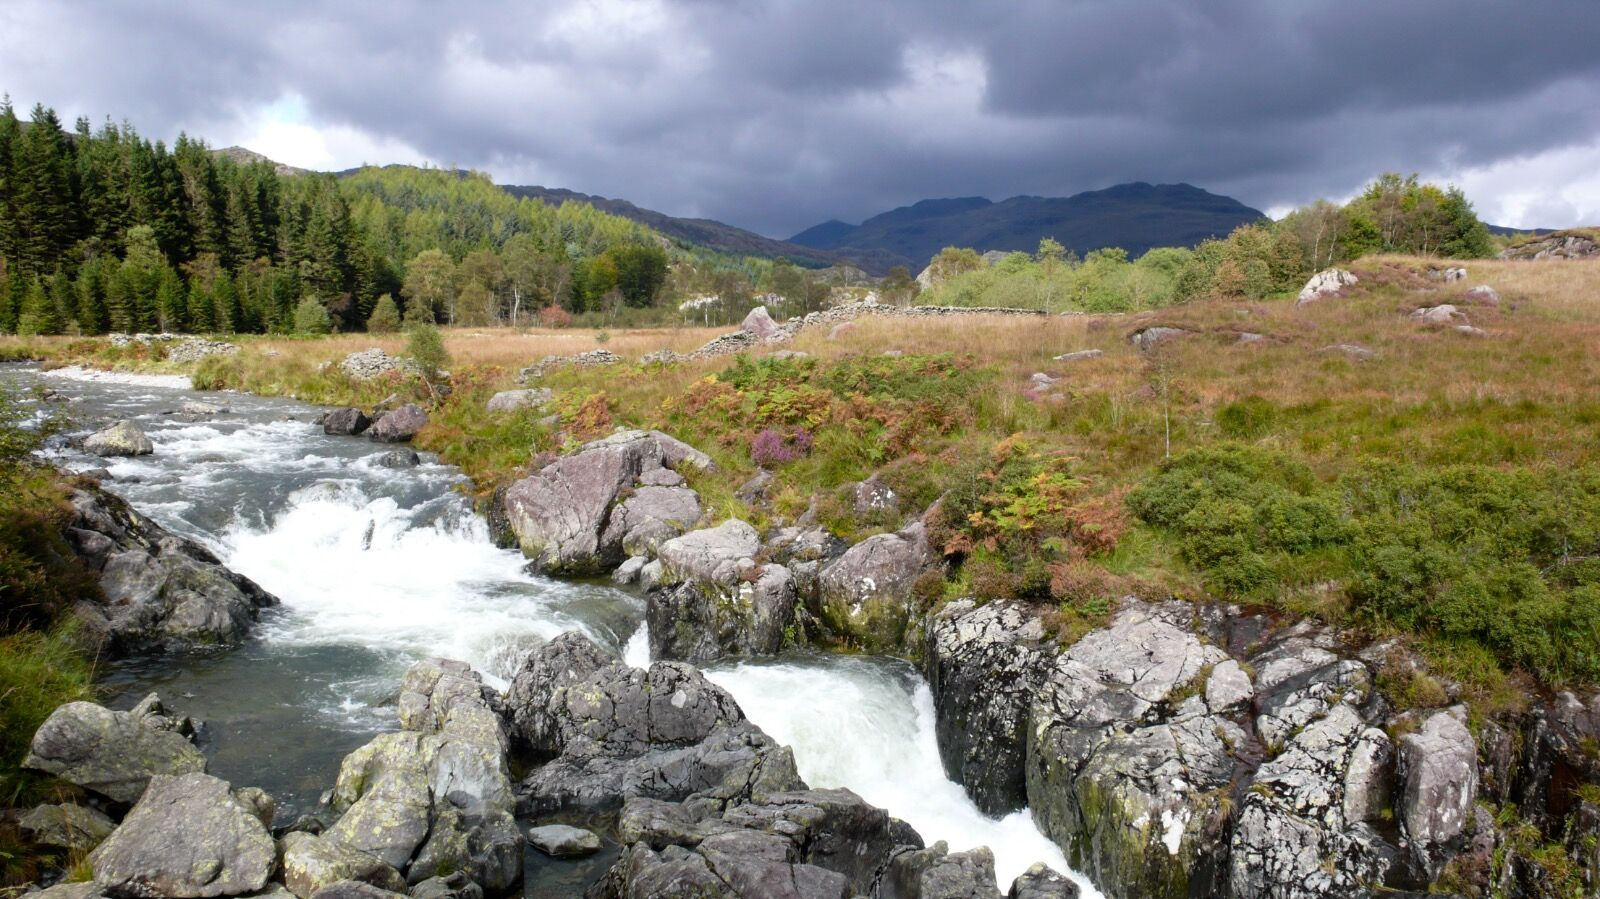 Storm Clouds over the River Duddon